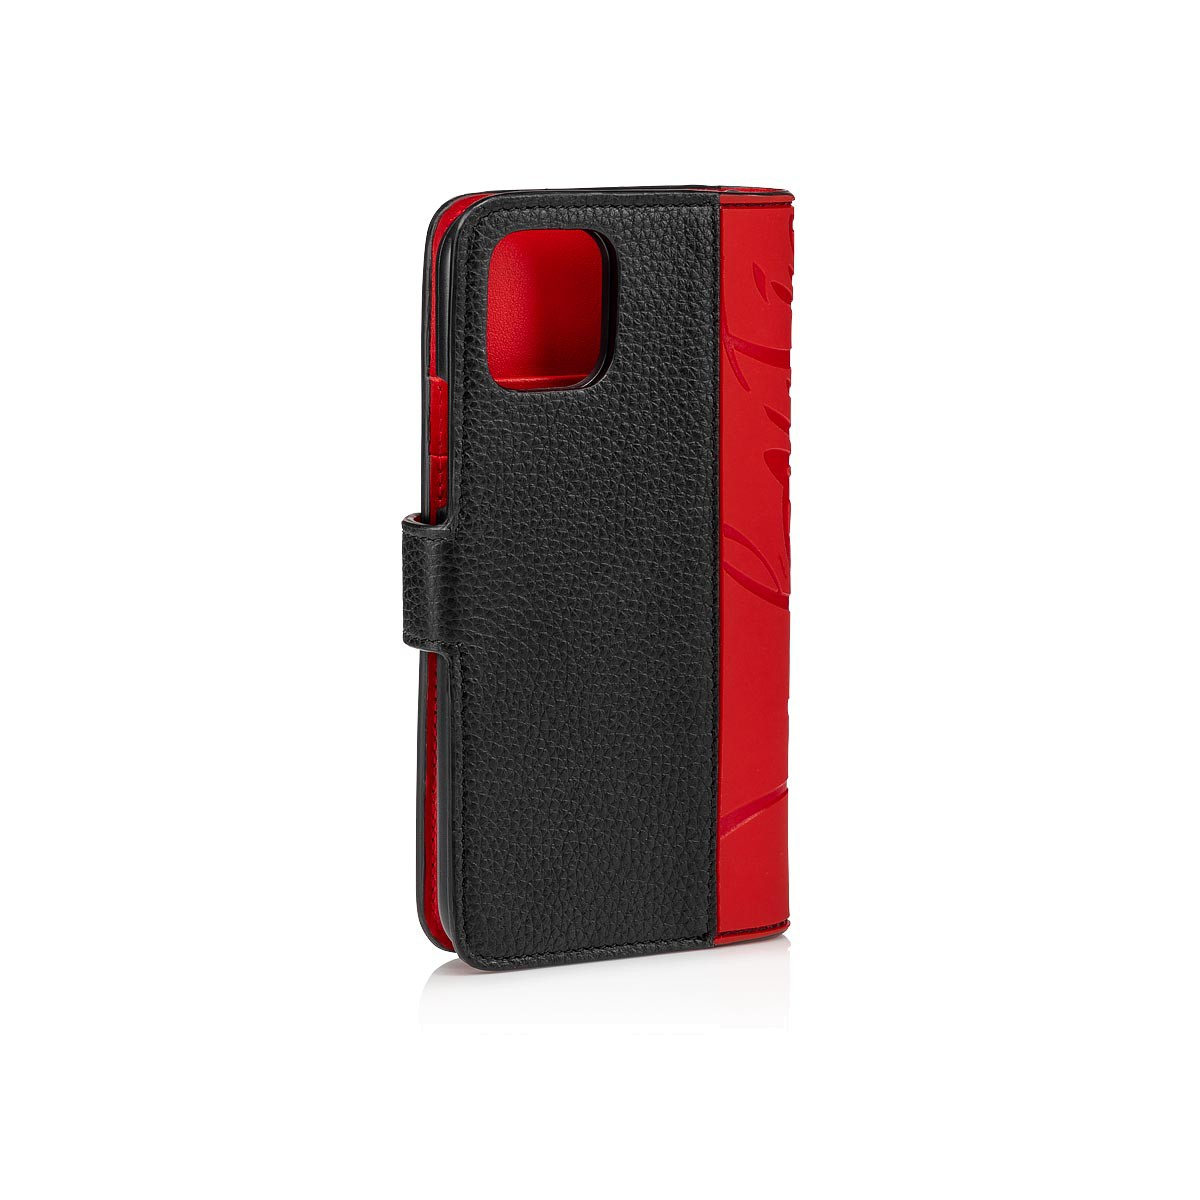 Small Leather Goods - Loubiflap Chain Case Iphone 11 - Christian Louboutin